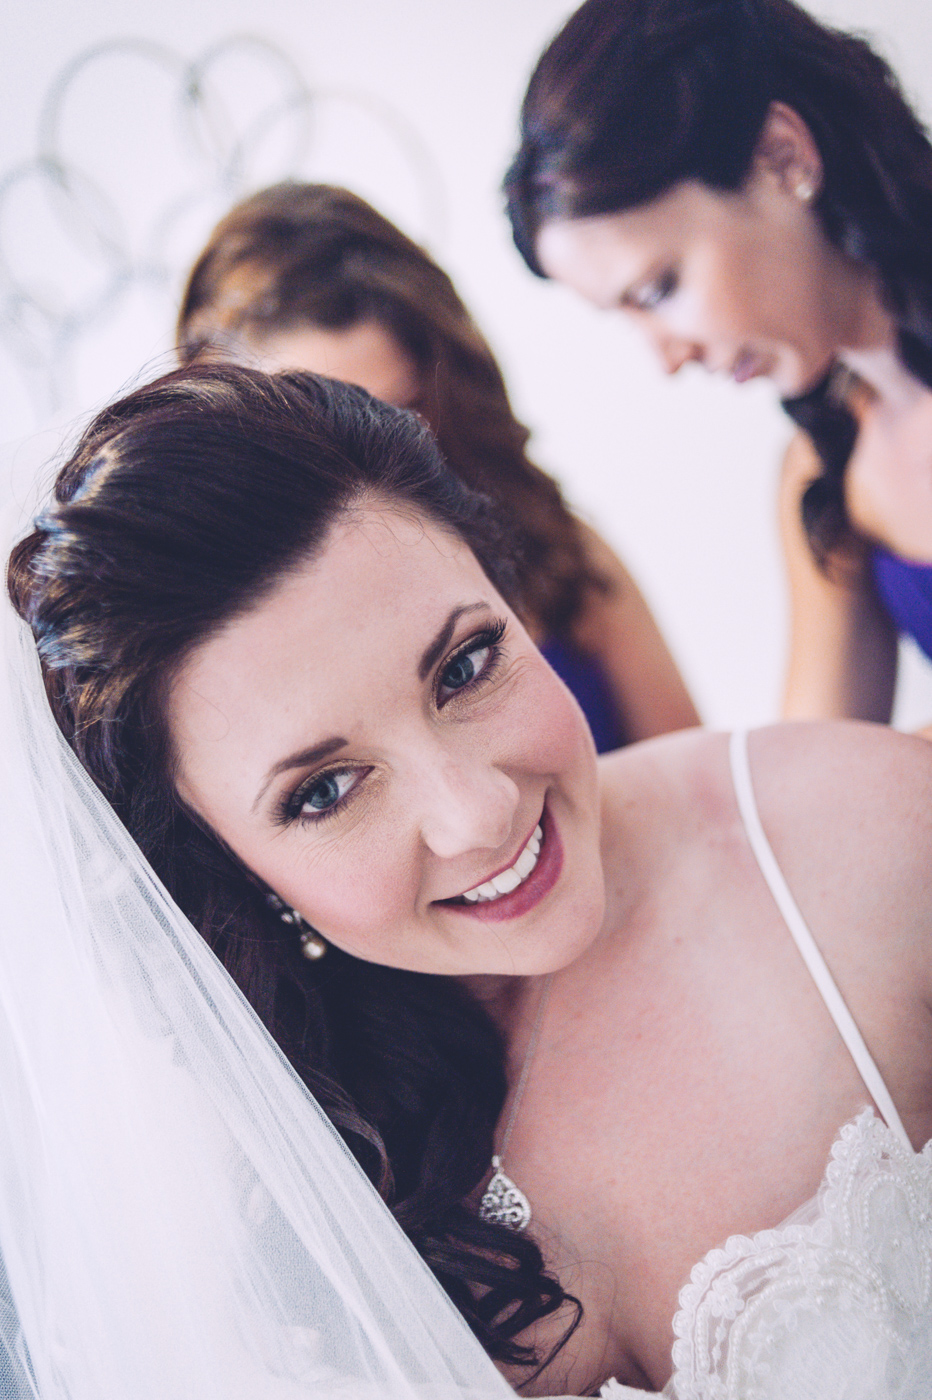 nikki_rob_wedding_blog34.jpg